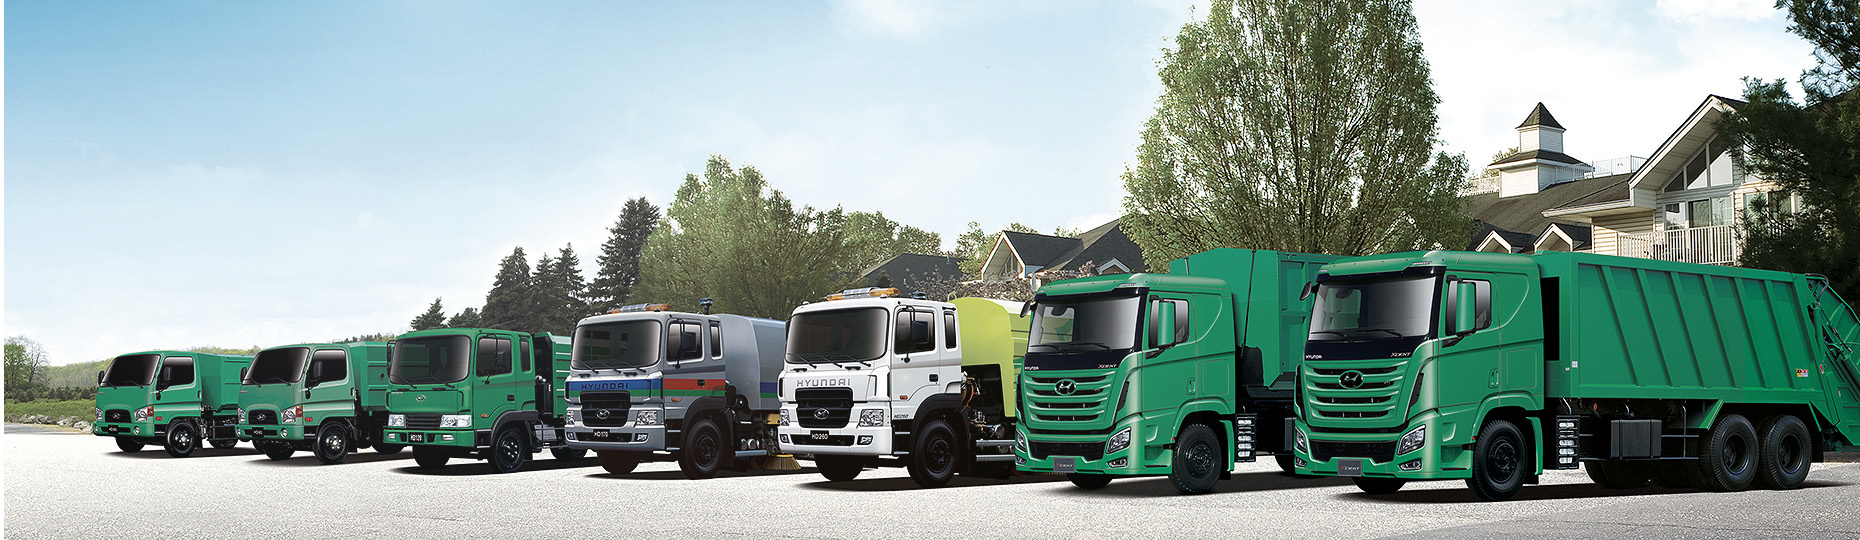 garbage-truck-press-pack-kv